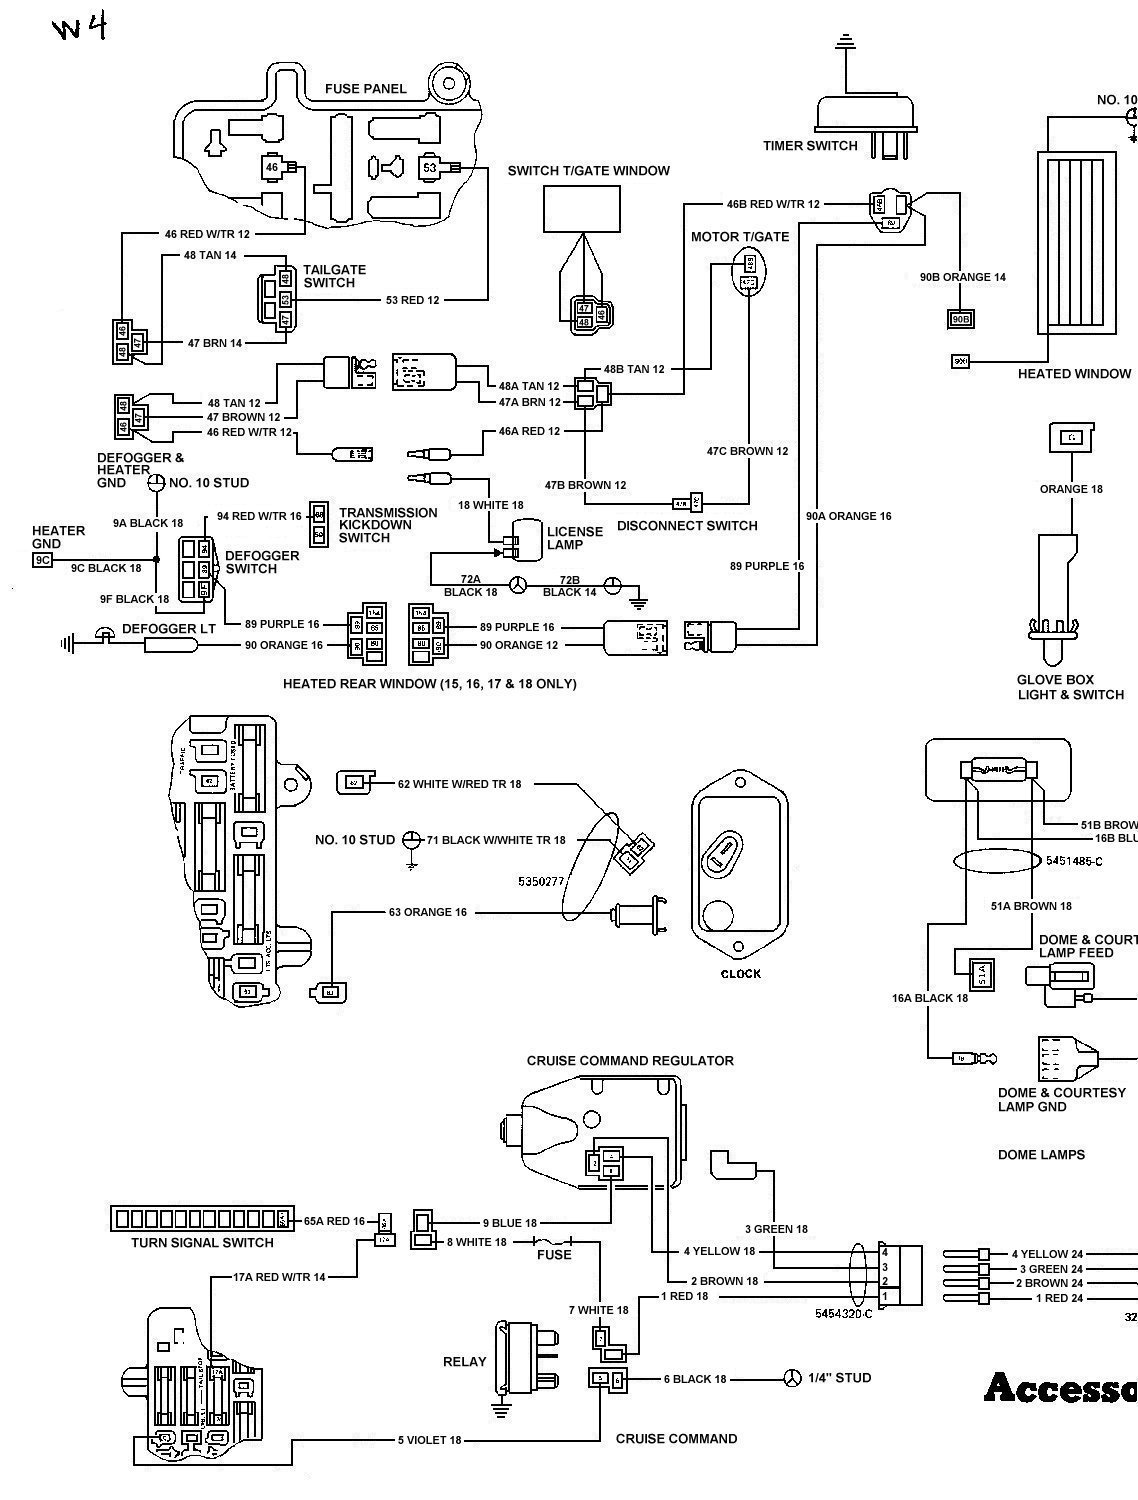 [SODI_2457]   DIAGRAM] Jeep Cj5 Ignition Wiring Diagram FULL Version HD Quality Wiring  Diagram - TOGMUSIC.STUDIO-OMEGA.FR | 79 Jeep Cj5 Wiring Diagram |  | Studio Omega